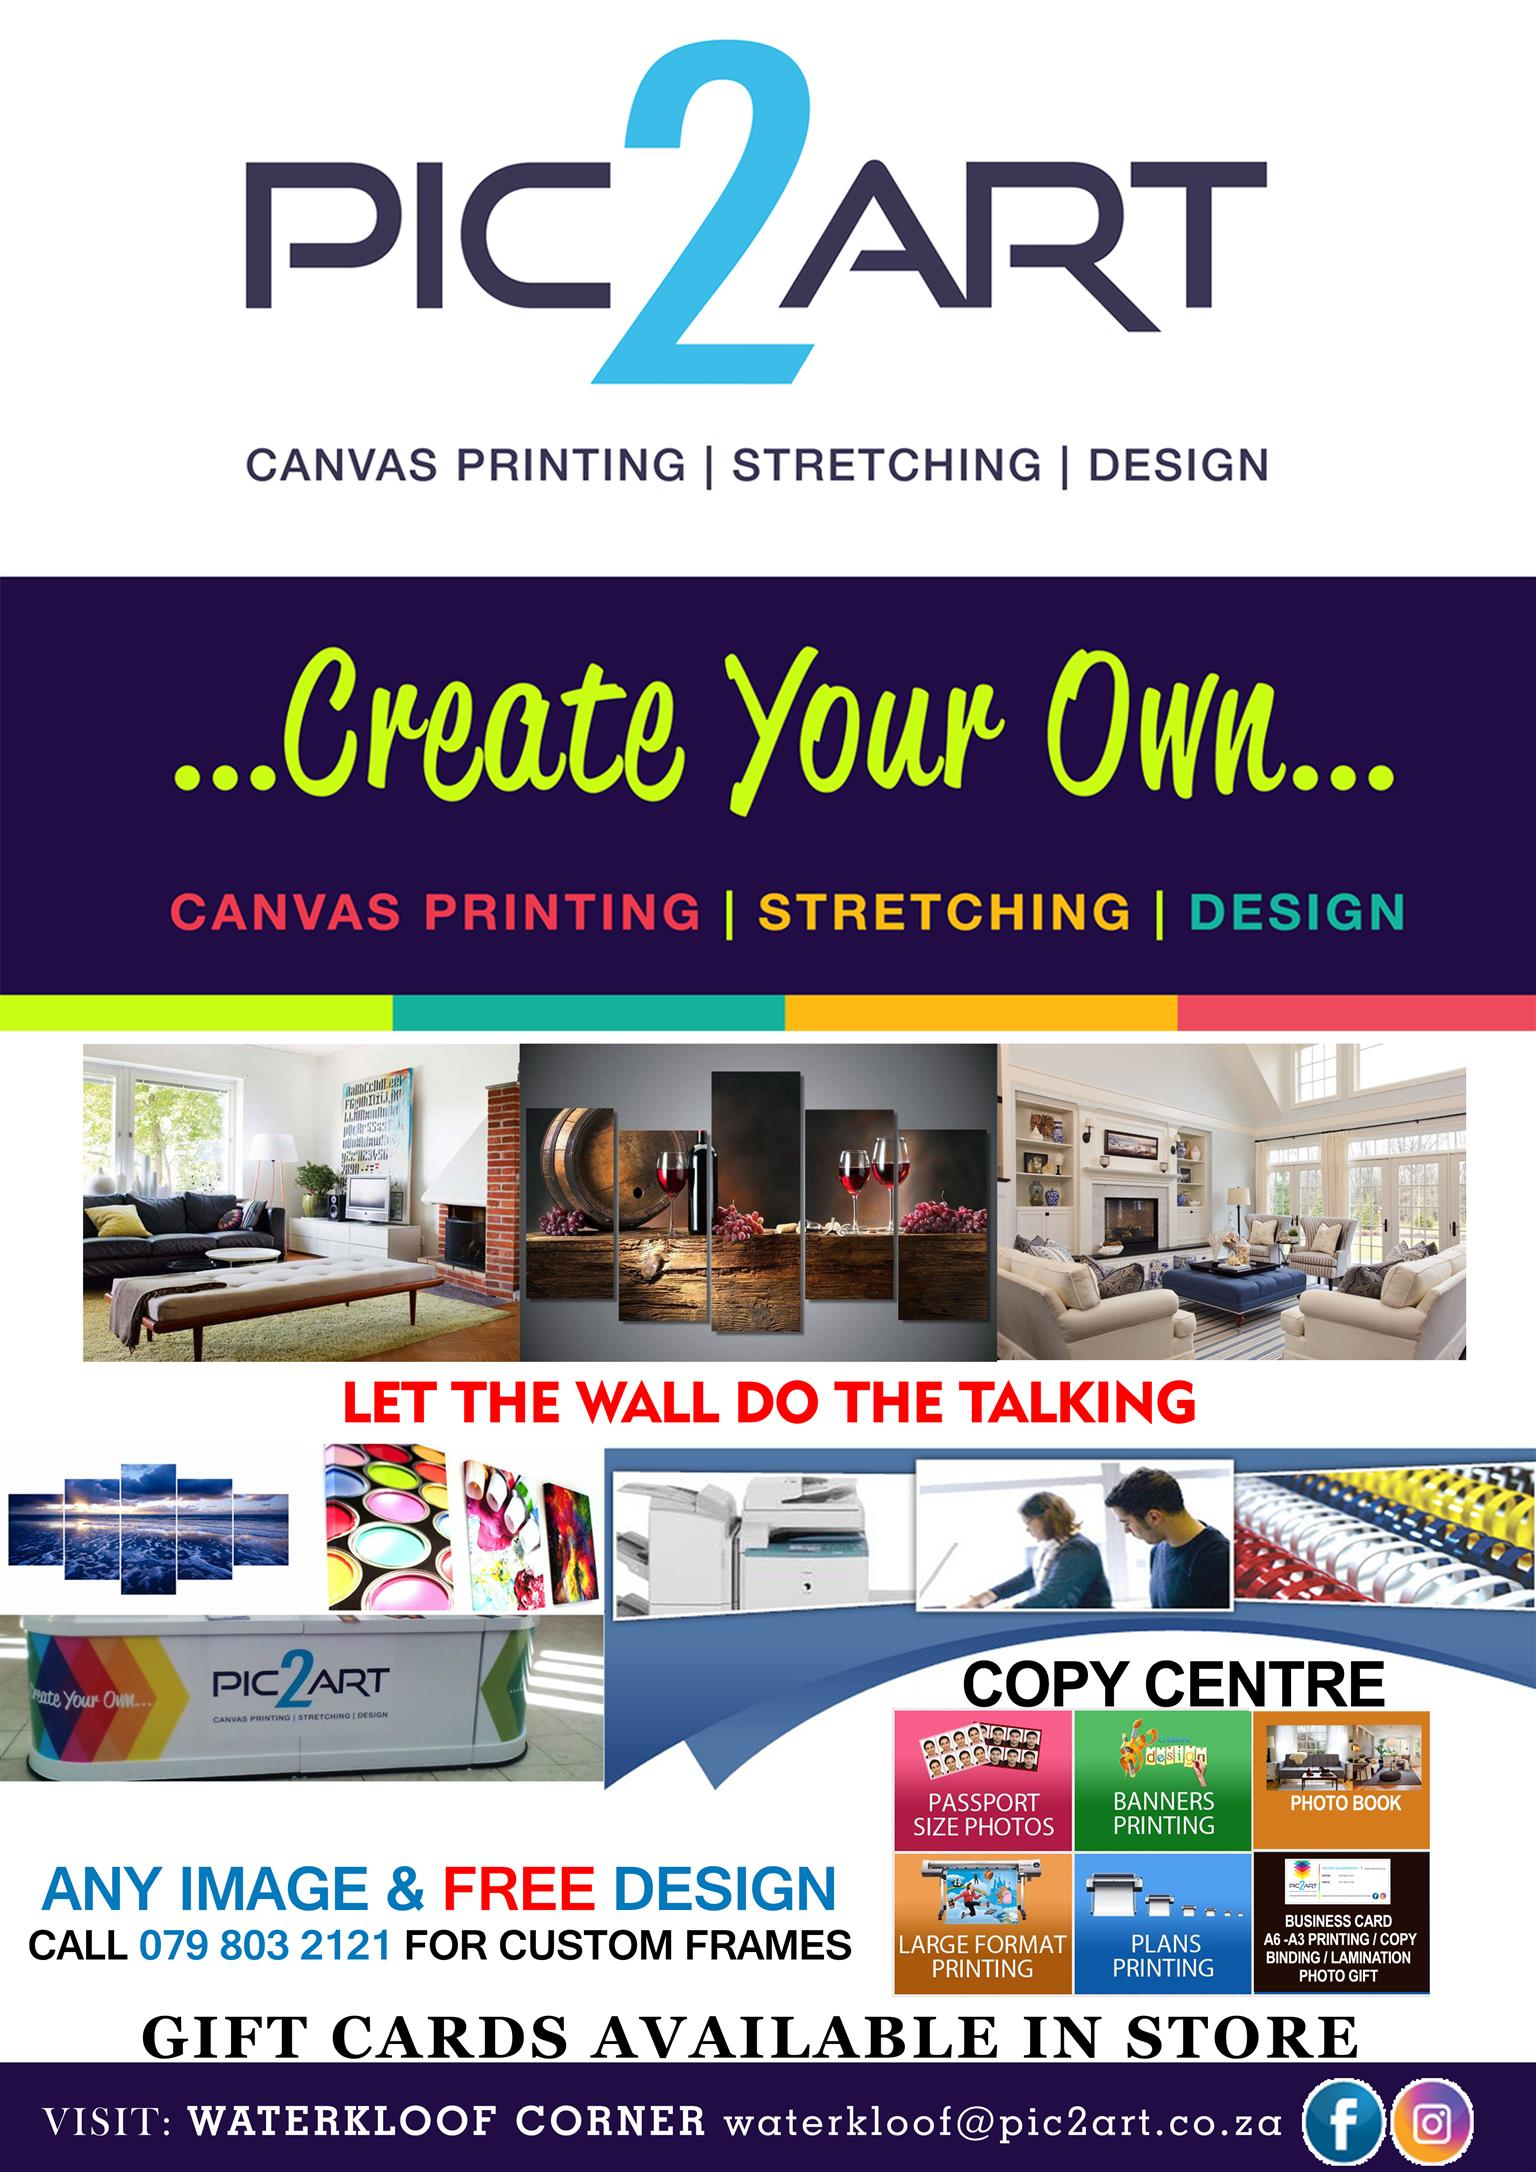 First class printing service